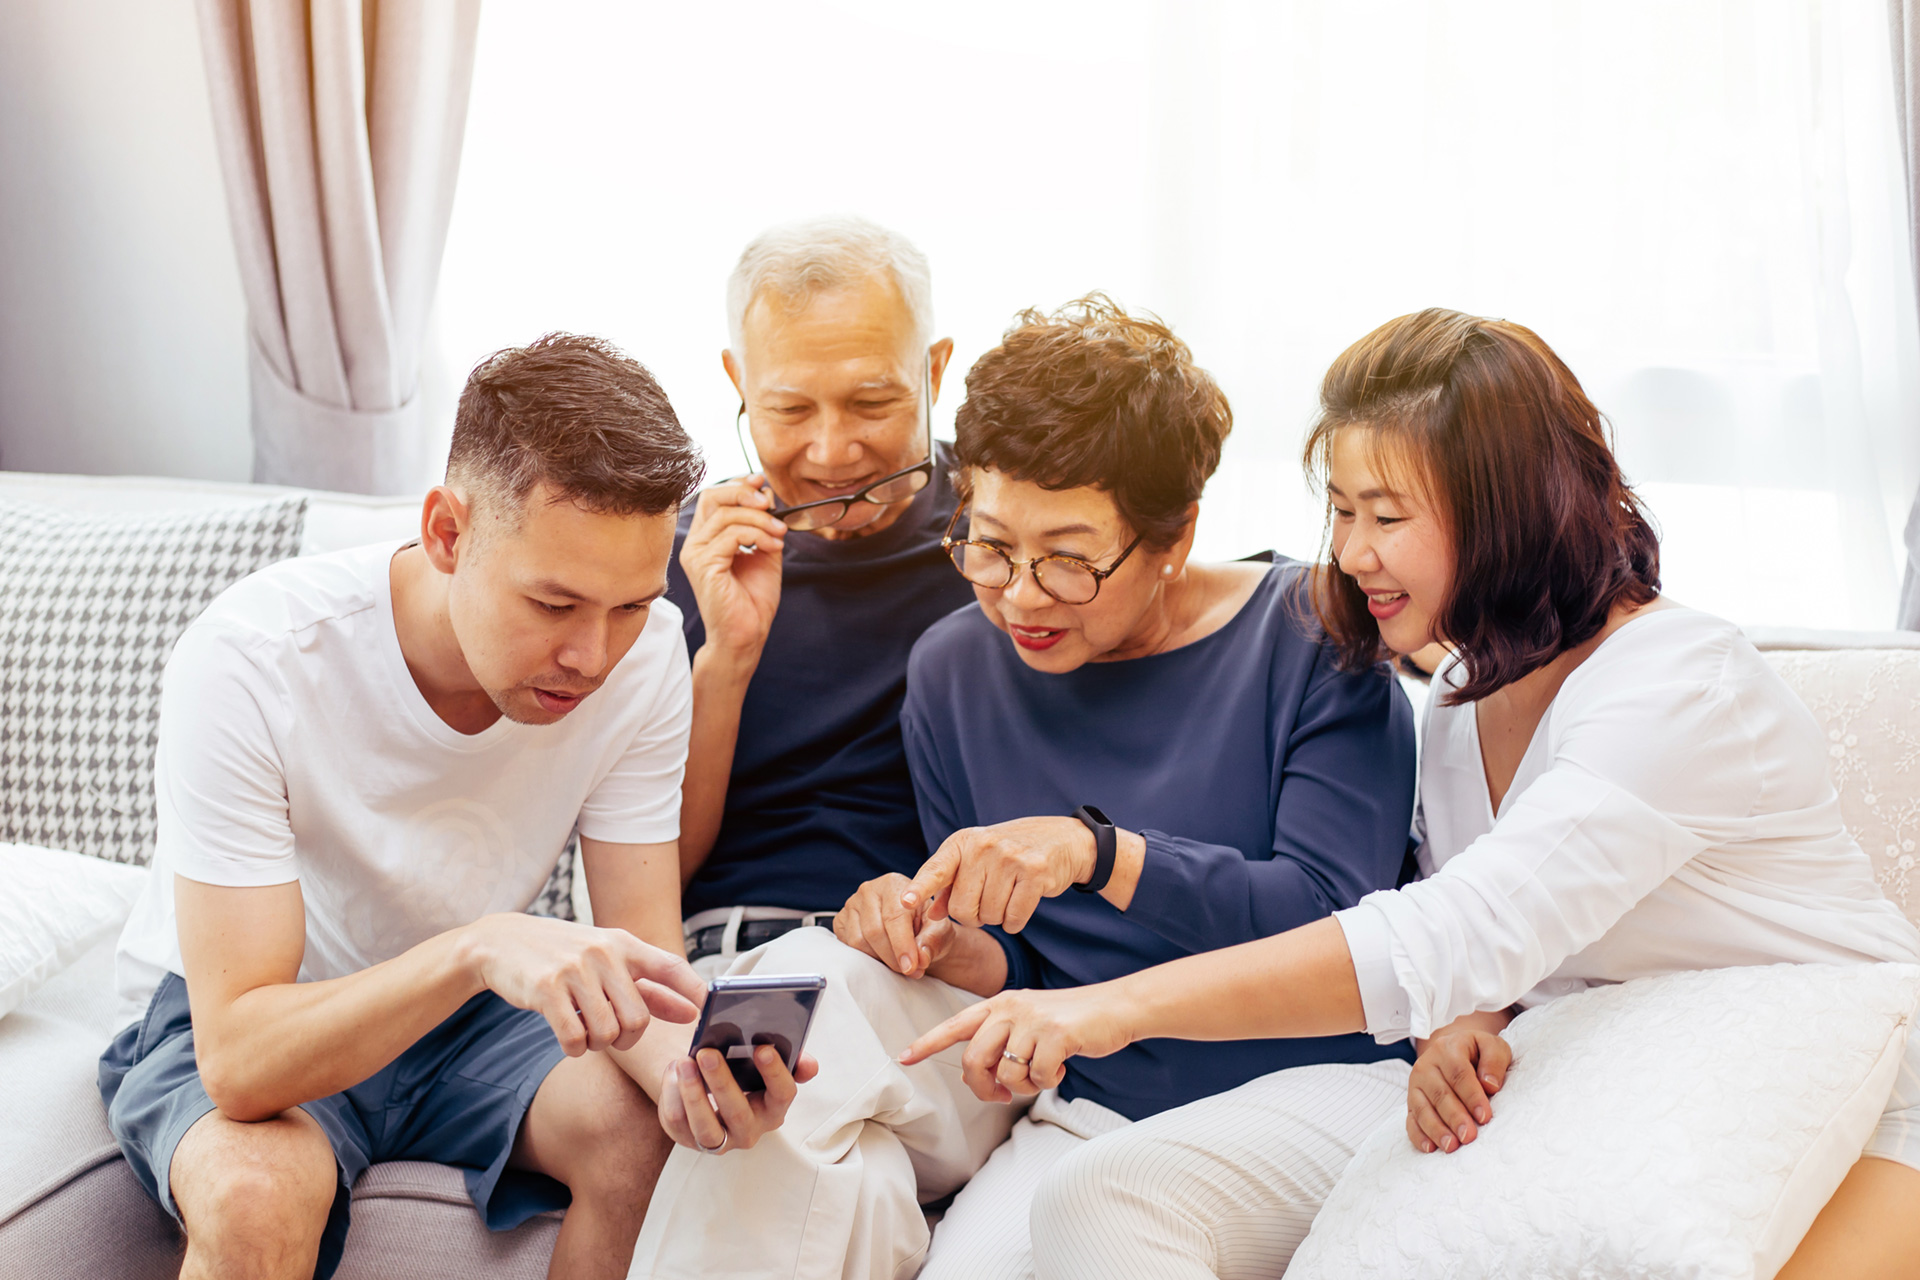 A family smiling and discussing something on a mobile screen